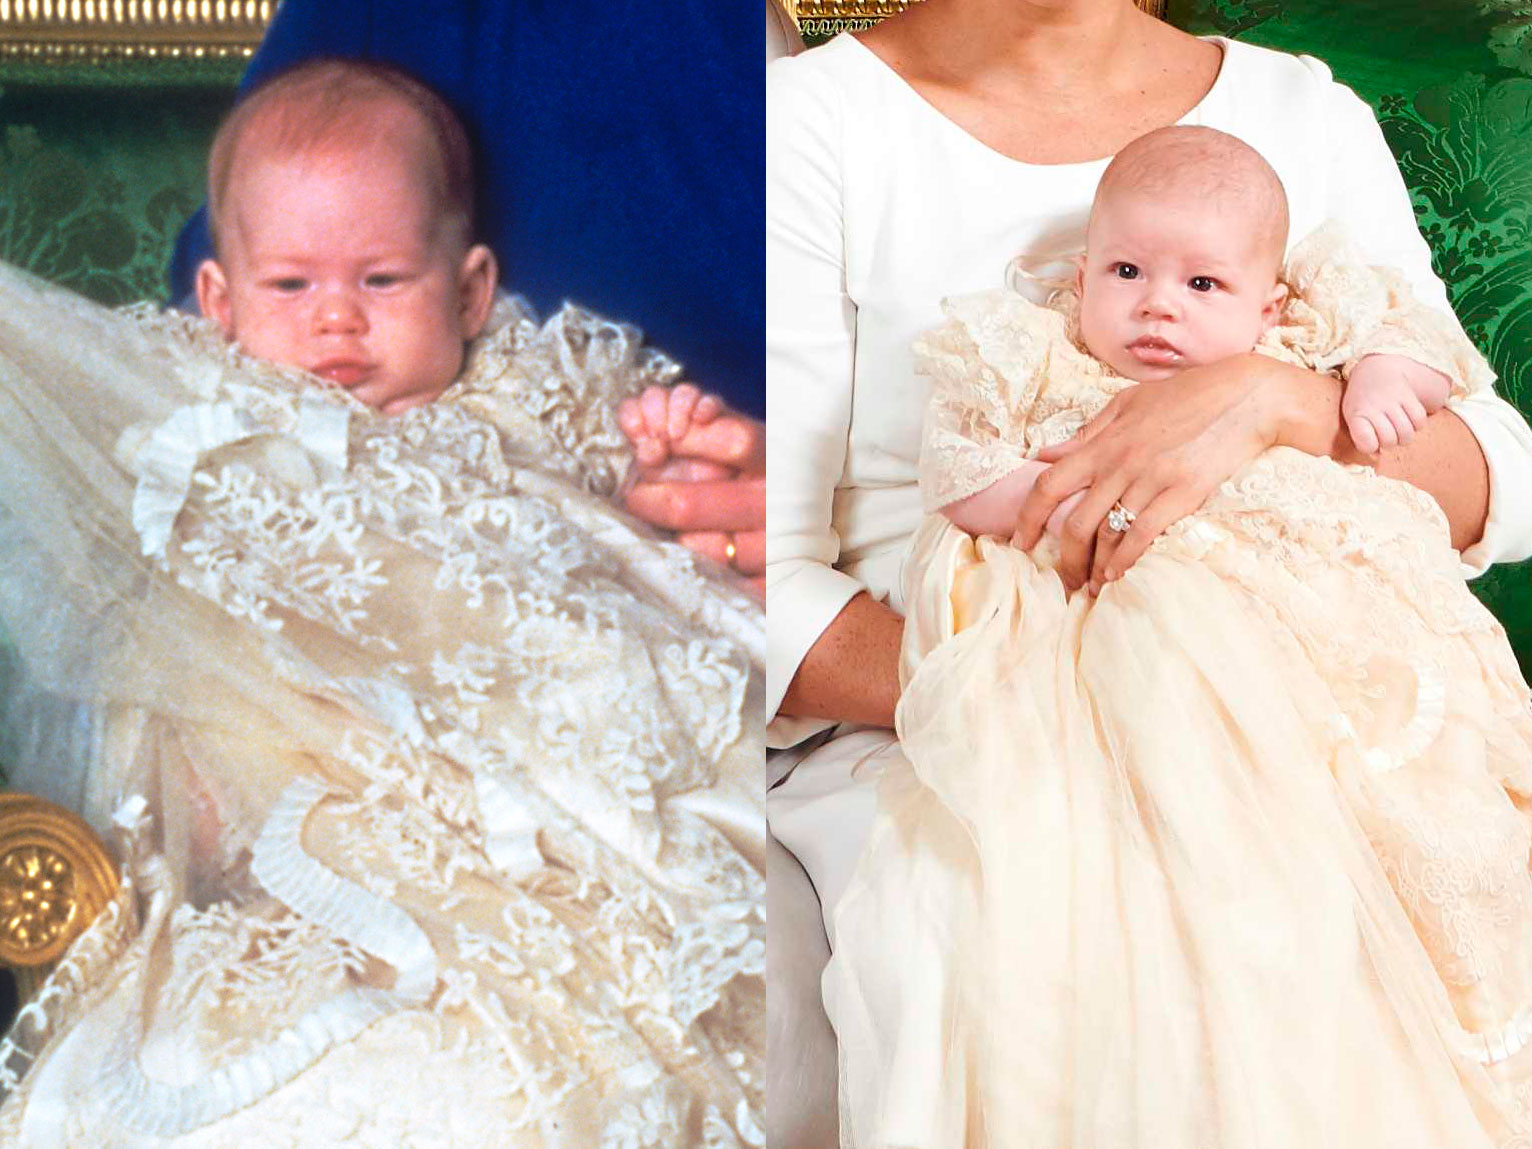 Prince Harry Christening and Archie Christening